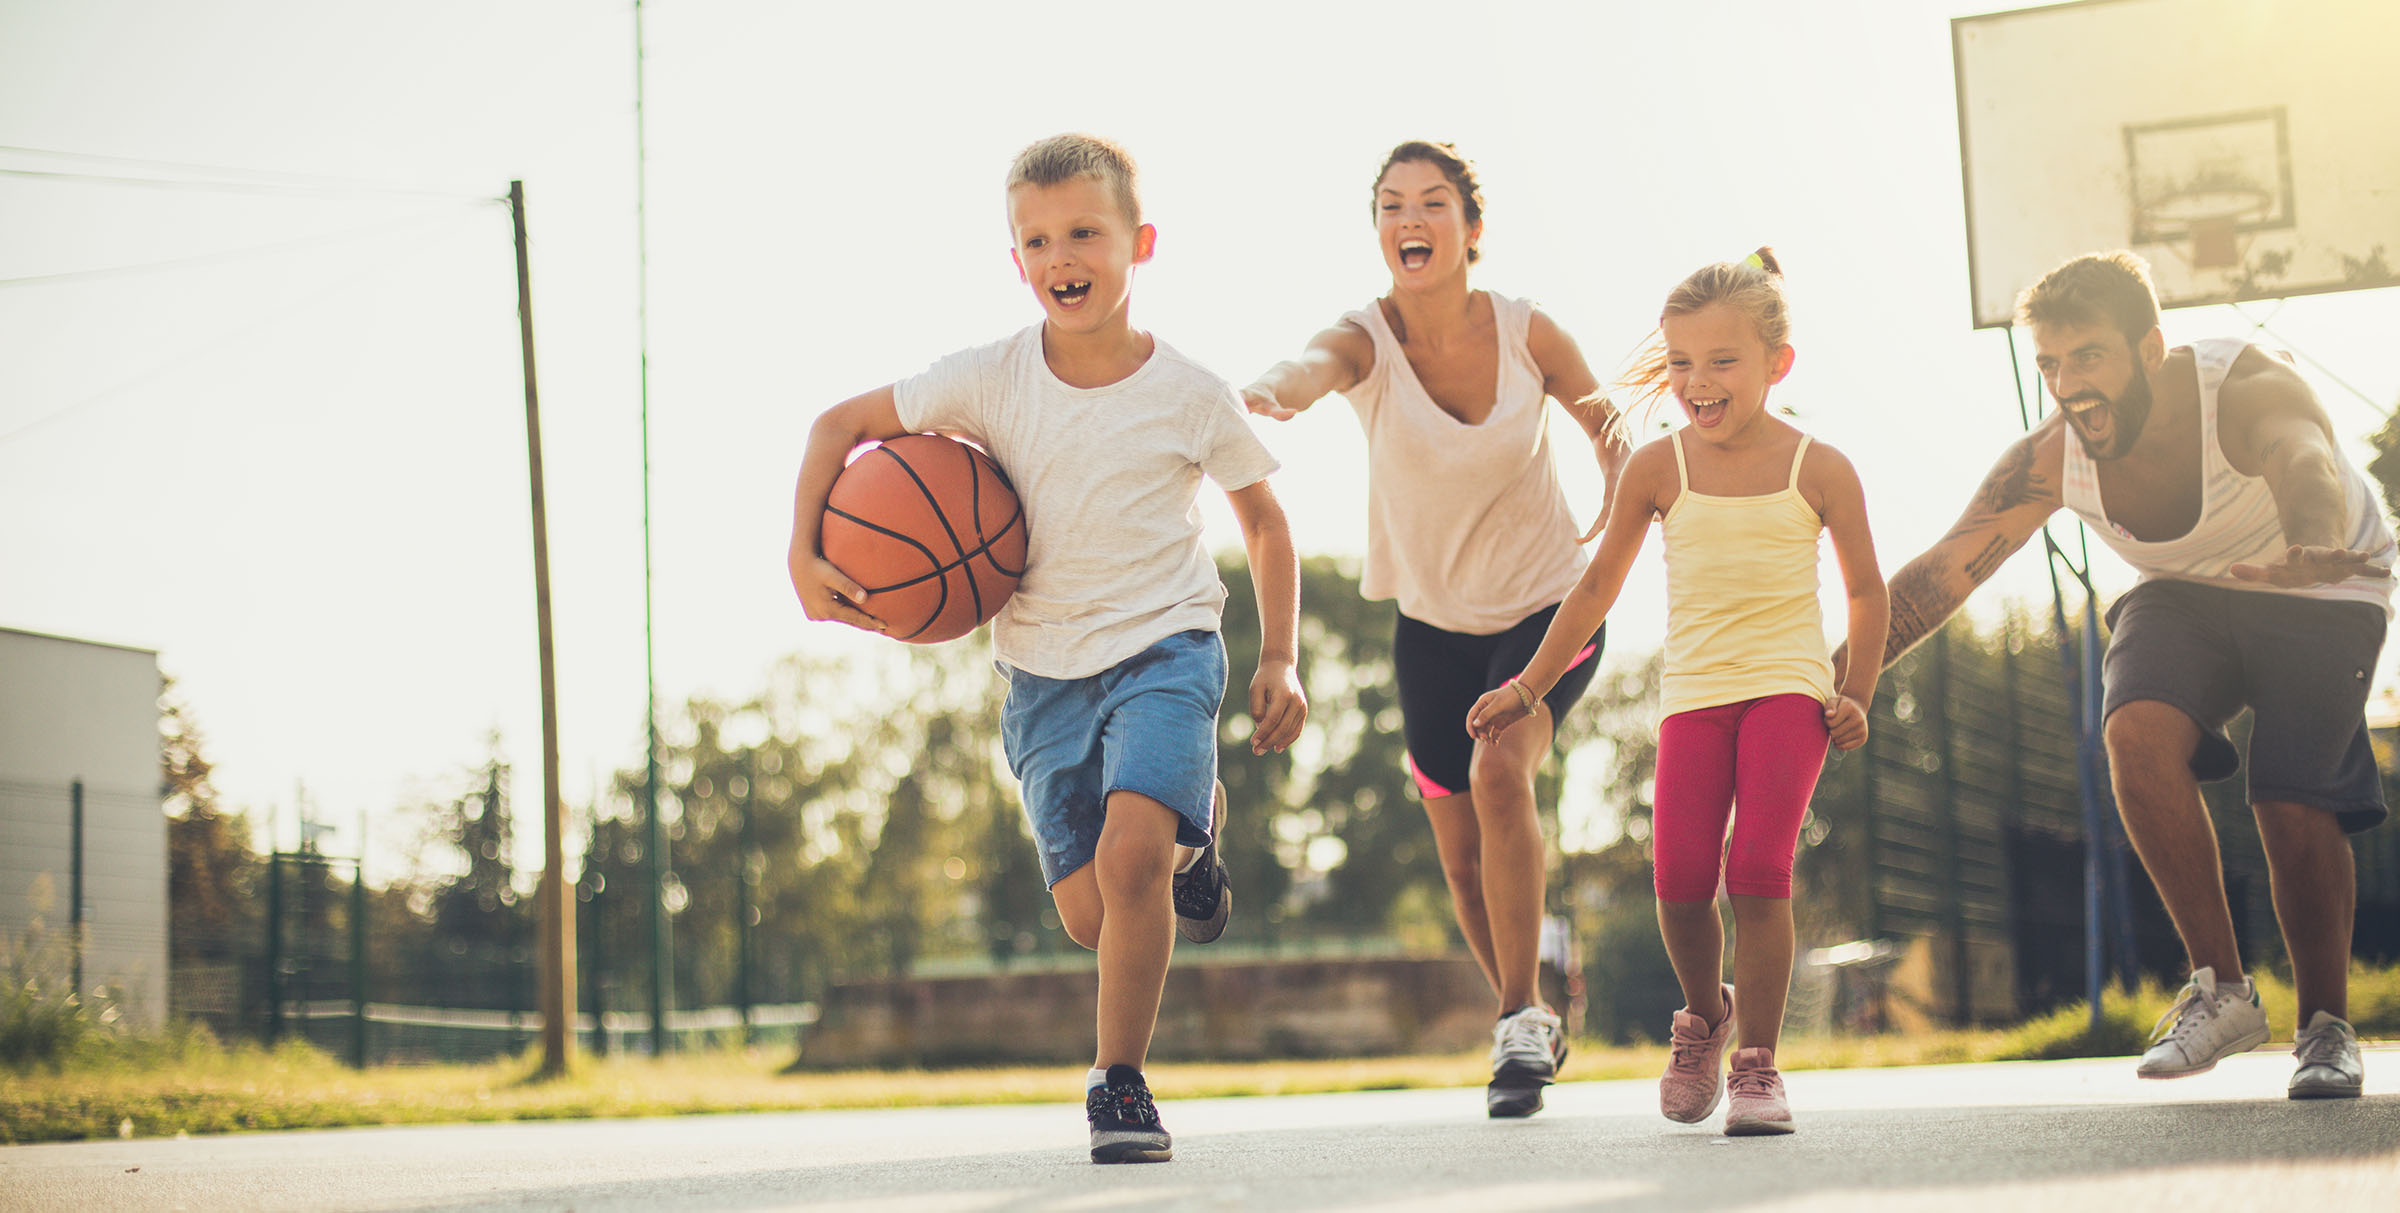 Spring is great for family sport.  Happy family playing basketball outside. On the move.